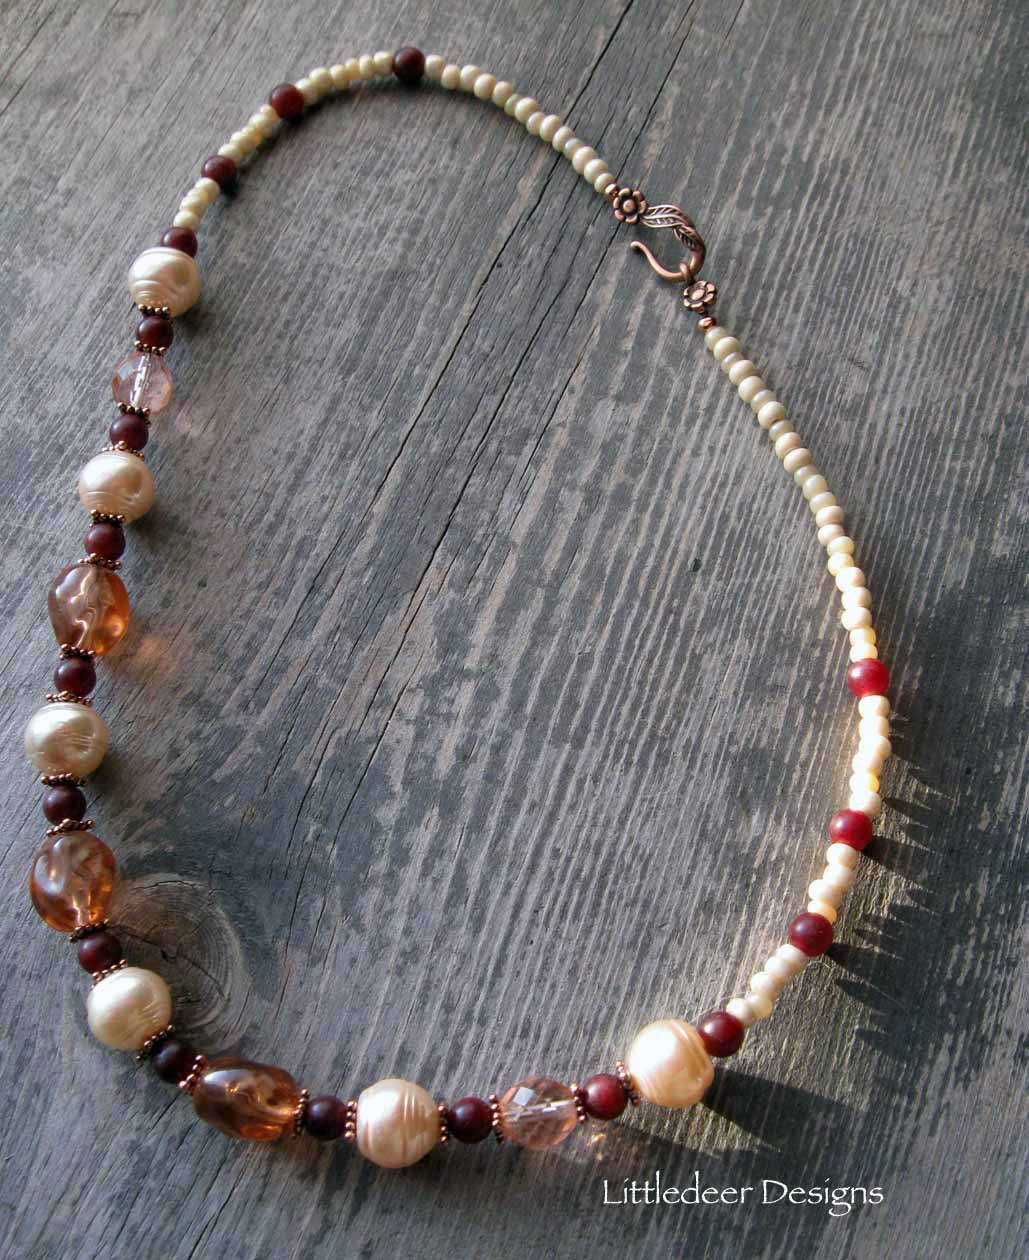 Handmade pale peach glass pearl, apricot glass and cranberry agate necklace